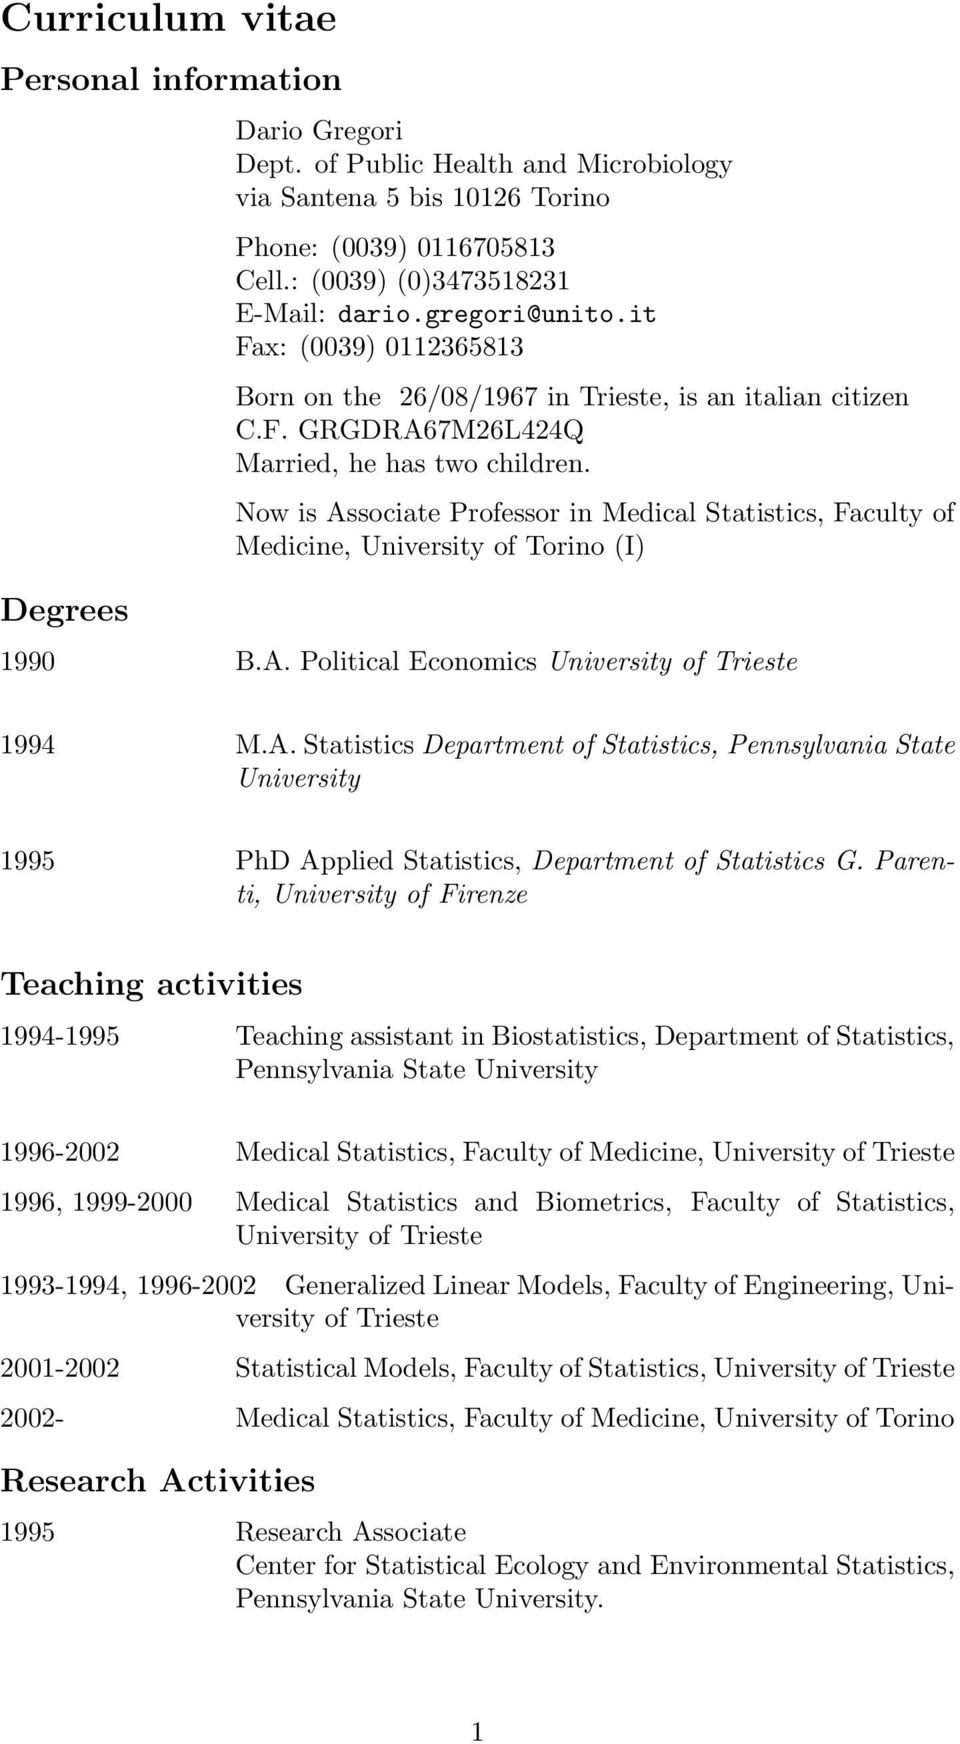 Now is Associate Professor in Medical Statistics, Faculty of Medicine, University of Torino (I) 1990 B.A. Political Economics University of Trieste 1994 M.A. Statistics Department of Statistics, Pennsylvania State University 1995 PhD Applied Statistics, Department of Statistics G.